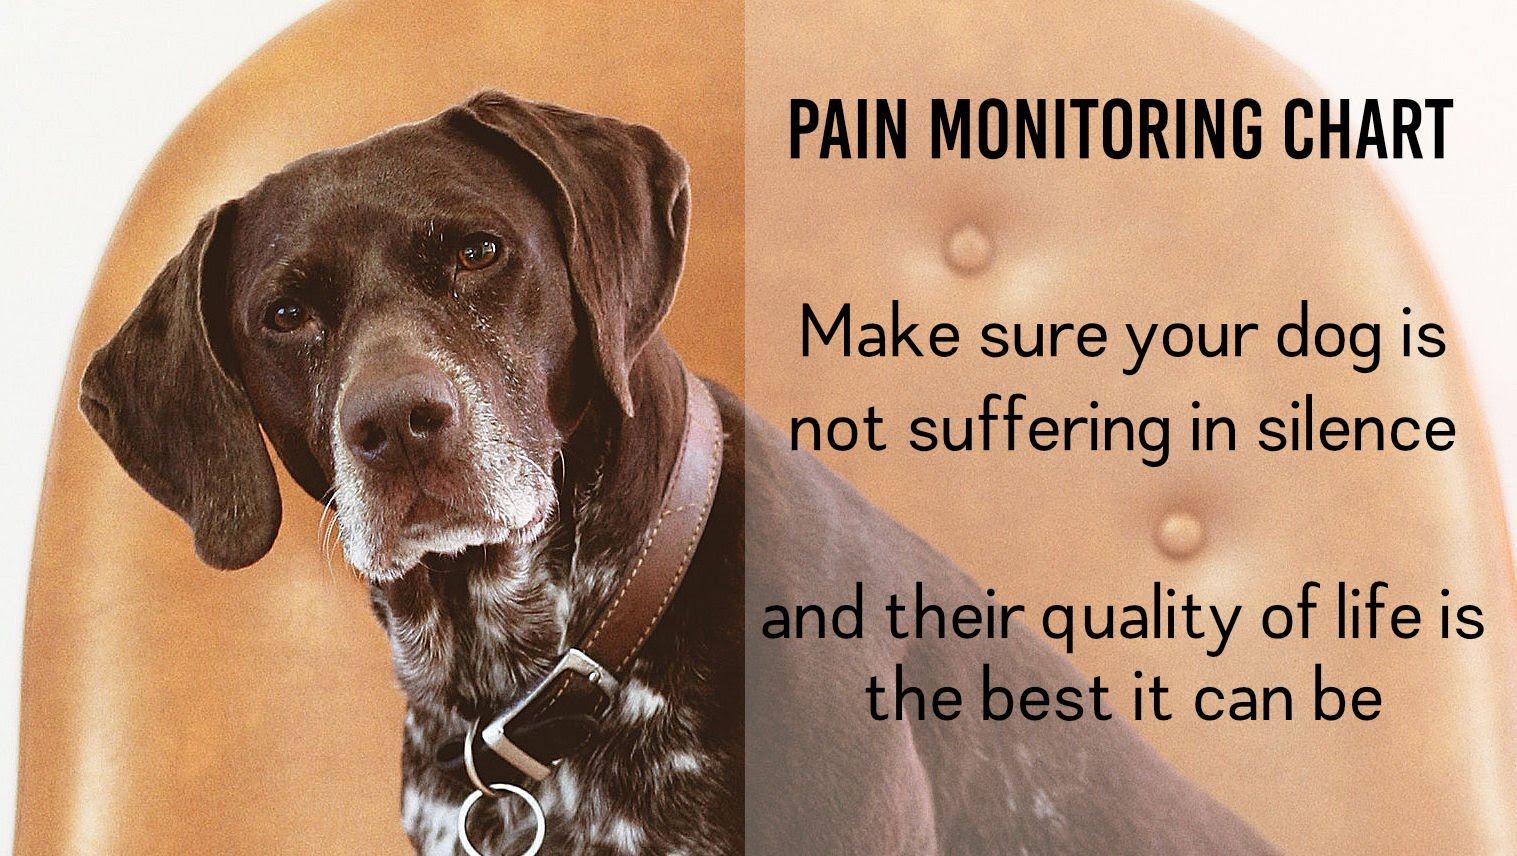 use the pain monitoring chart to check the symptoms of arthritis in your dog are going away with treatment